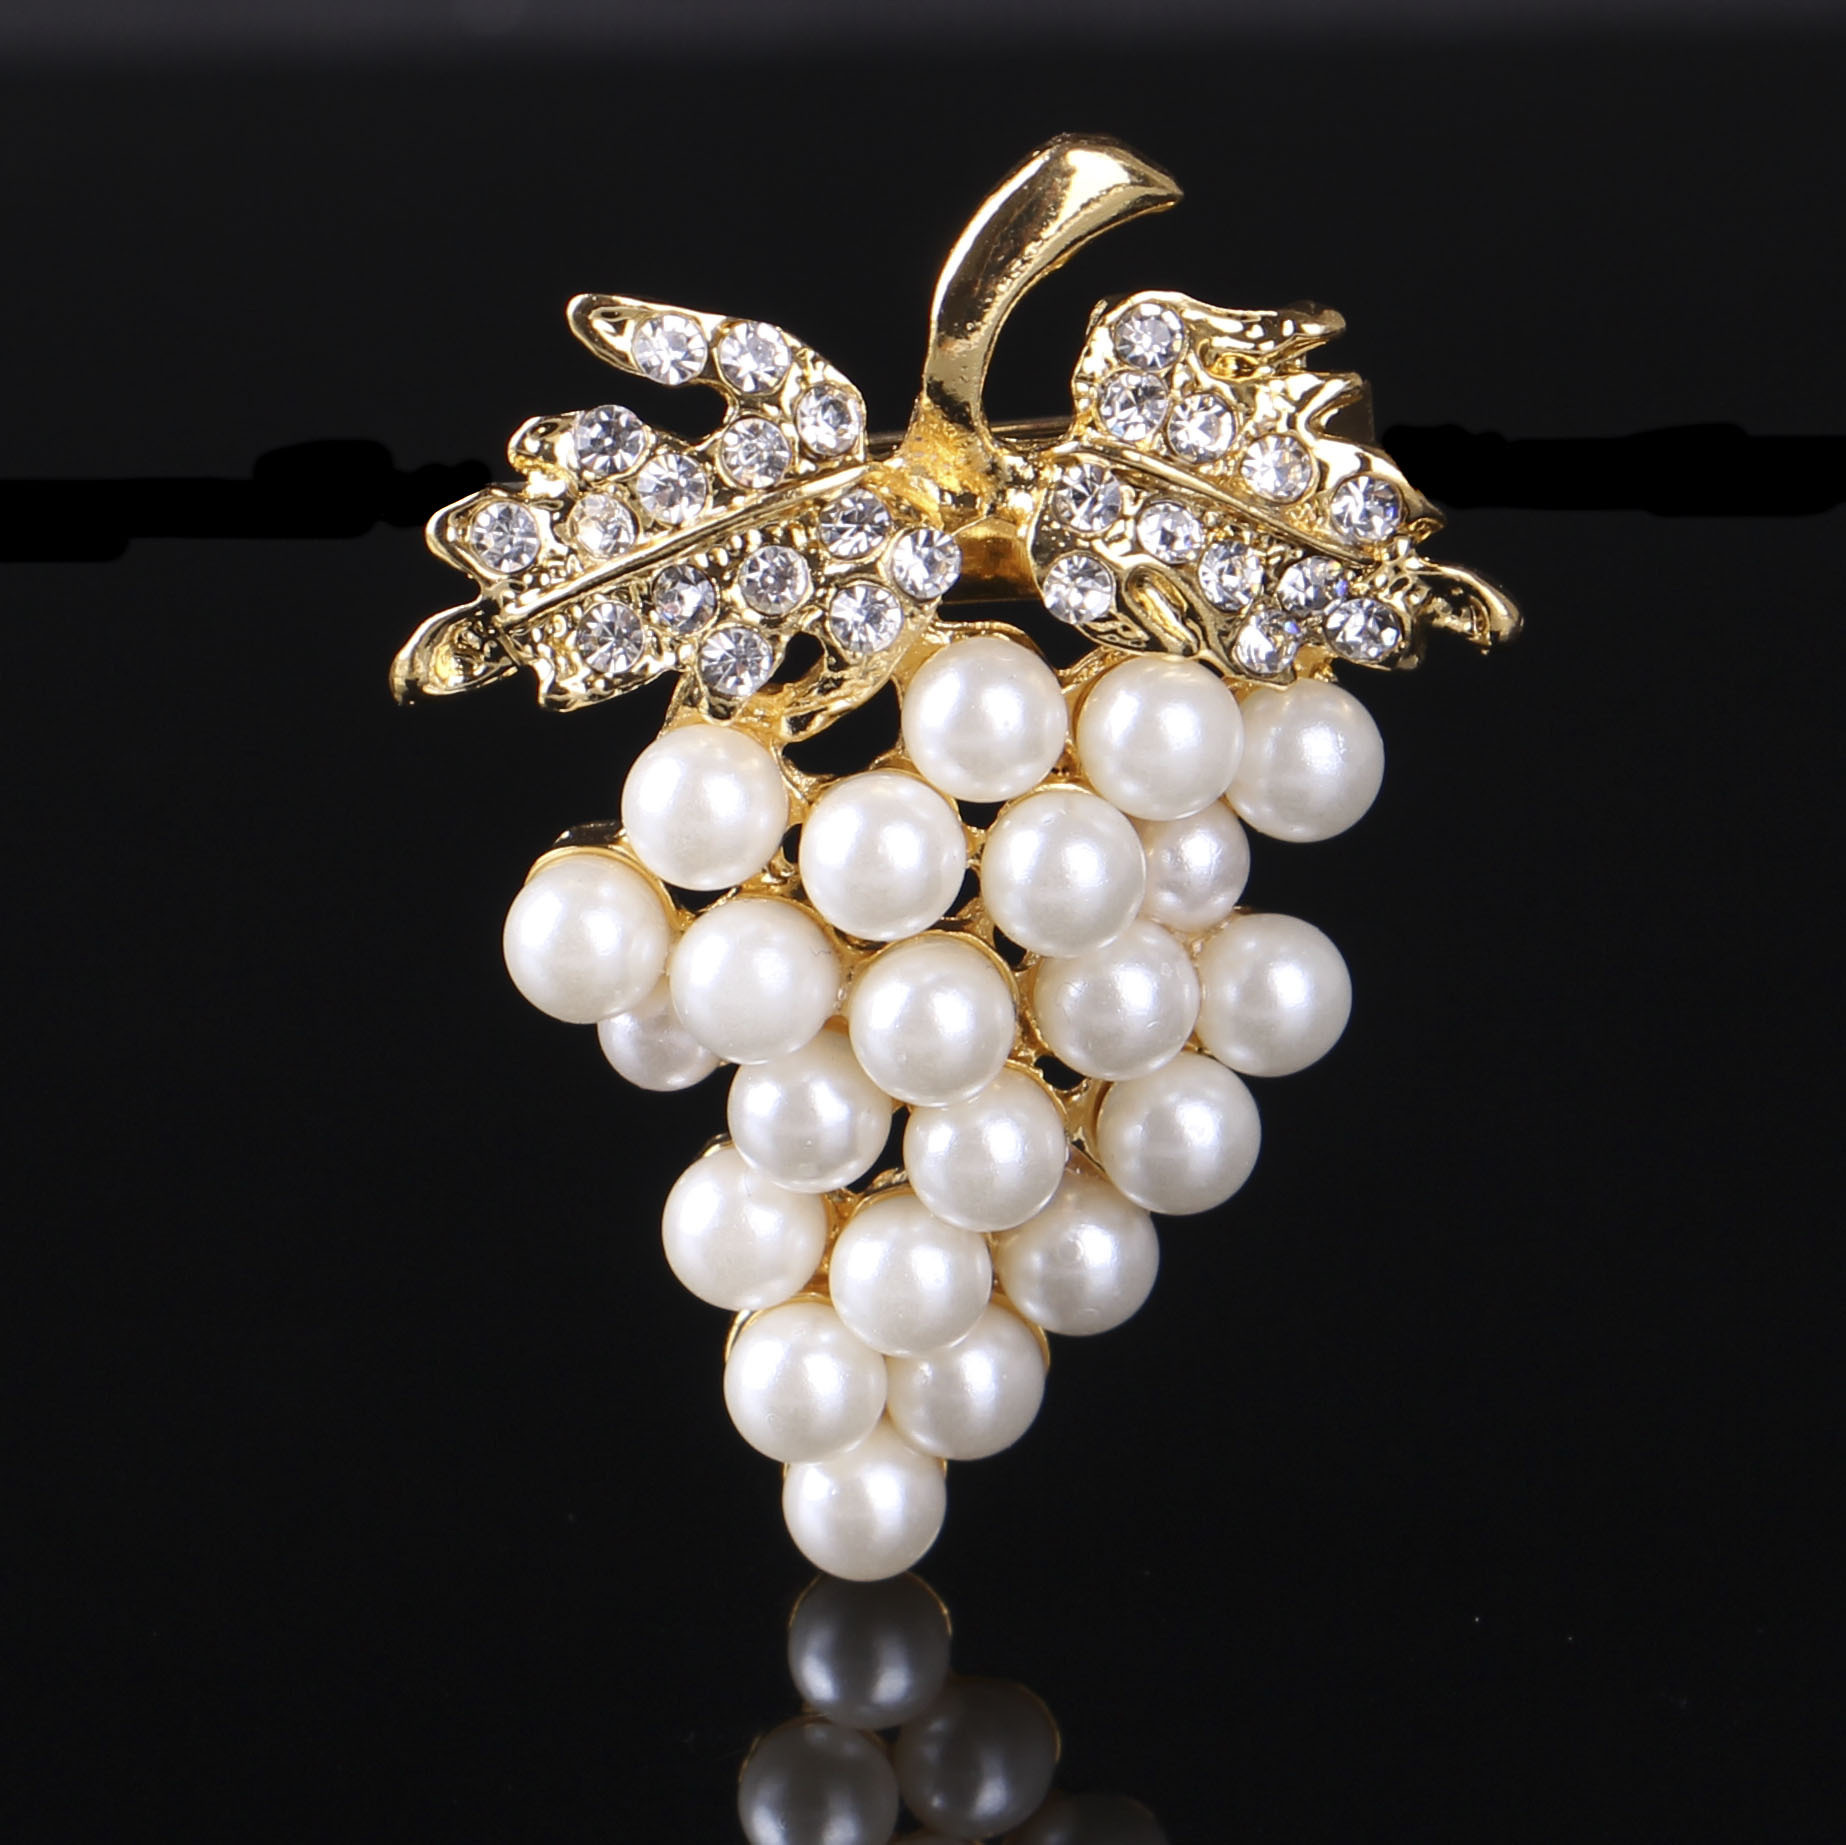 Finely Detailed Pearl Grape Fruit Brooch for Fashionable Look